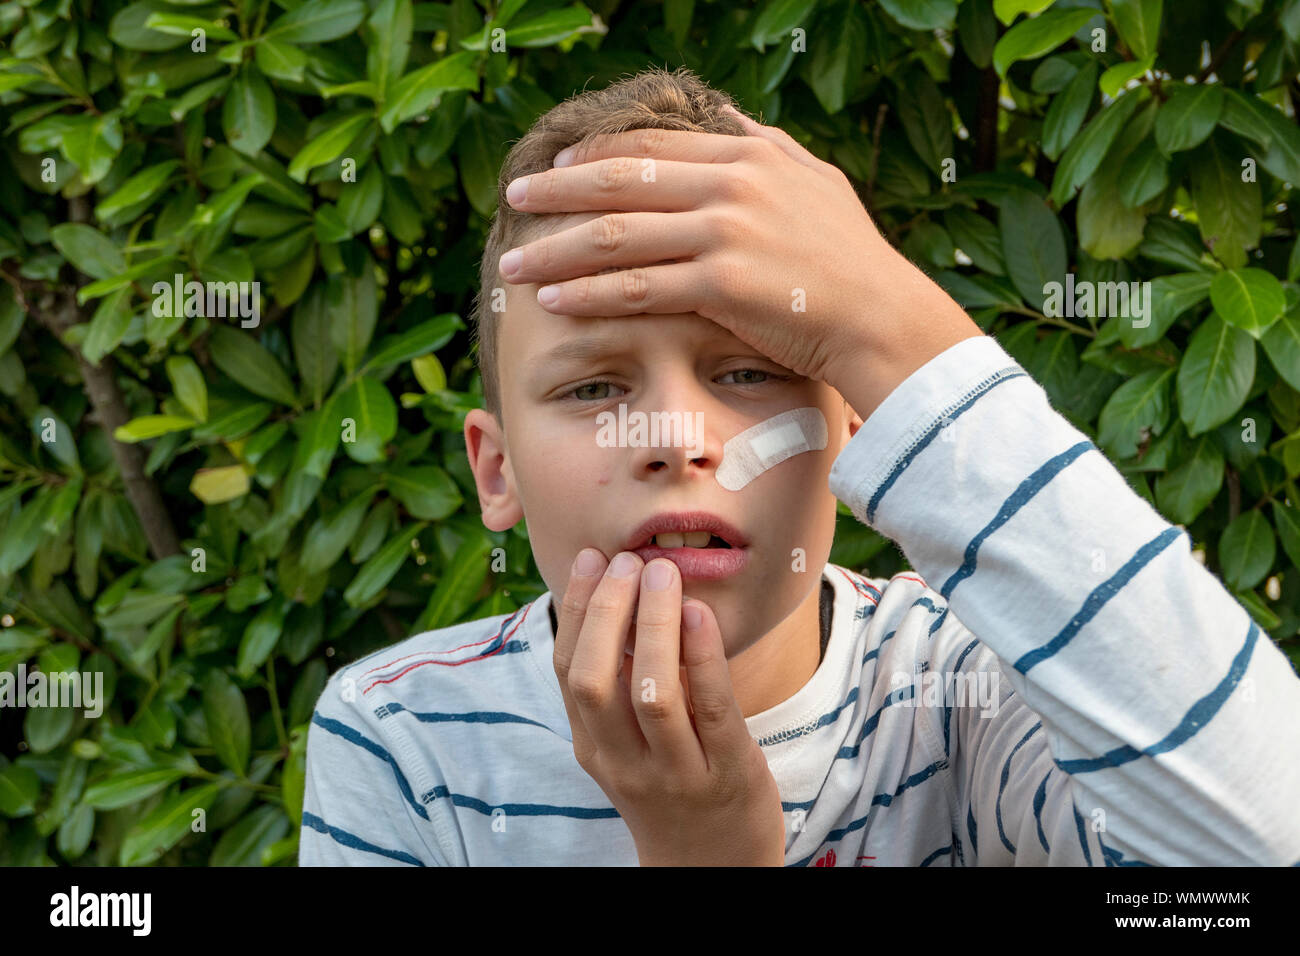 Boy with plaster on his face in front of a hedge looks sad Stock Photo